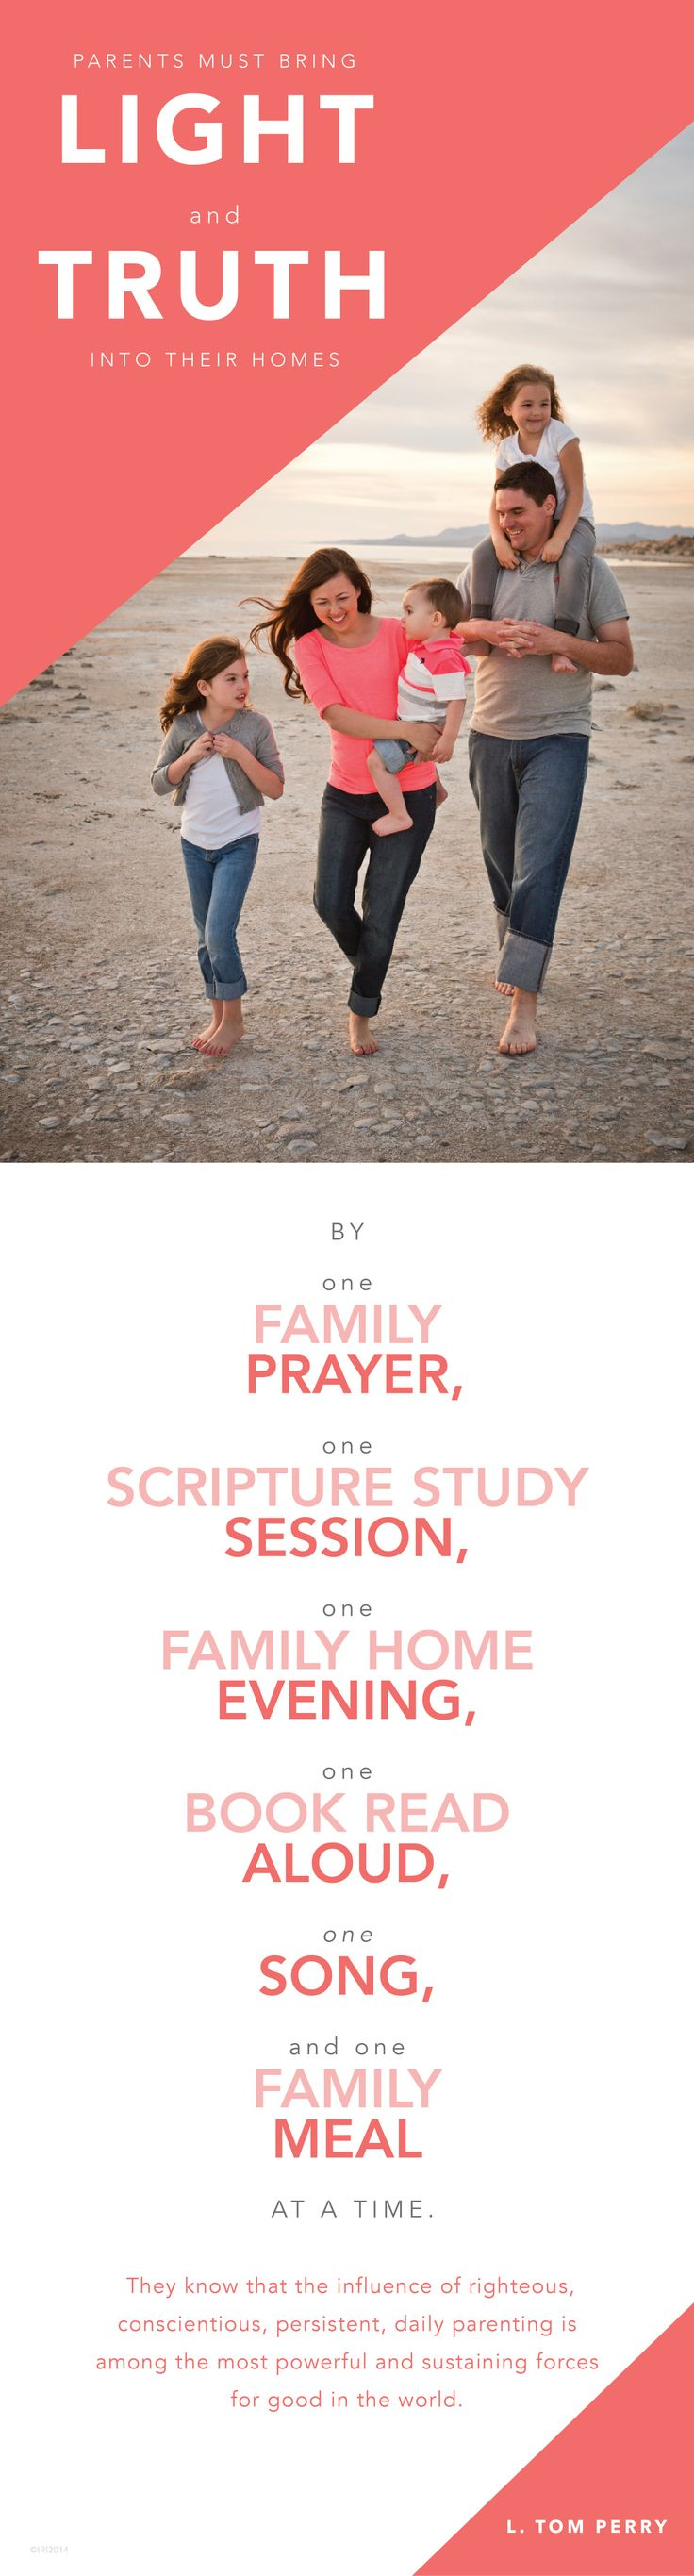 Parents must bring light and truth into their homes by one family prayer, one scripture study session, one family home evening, one book read aloud, one song, and one family meal at a time.